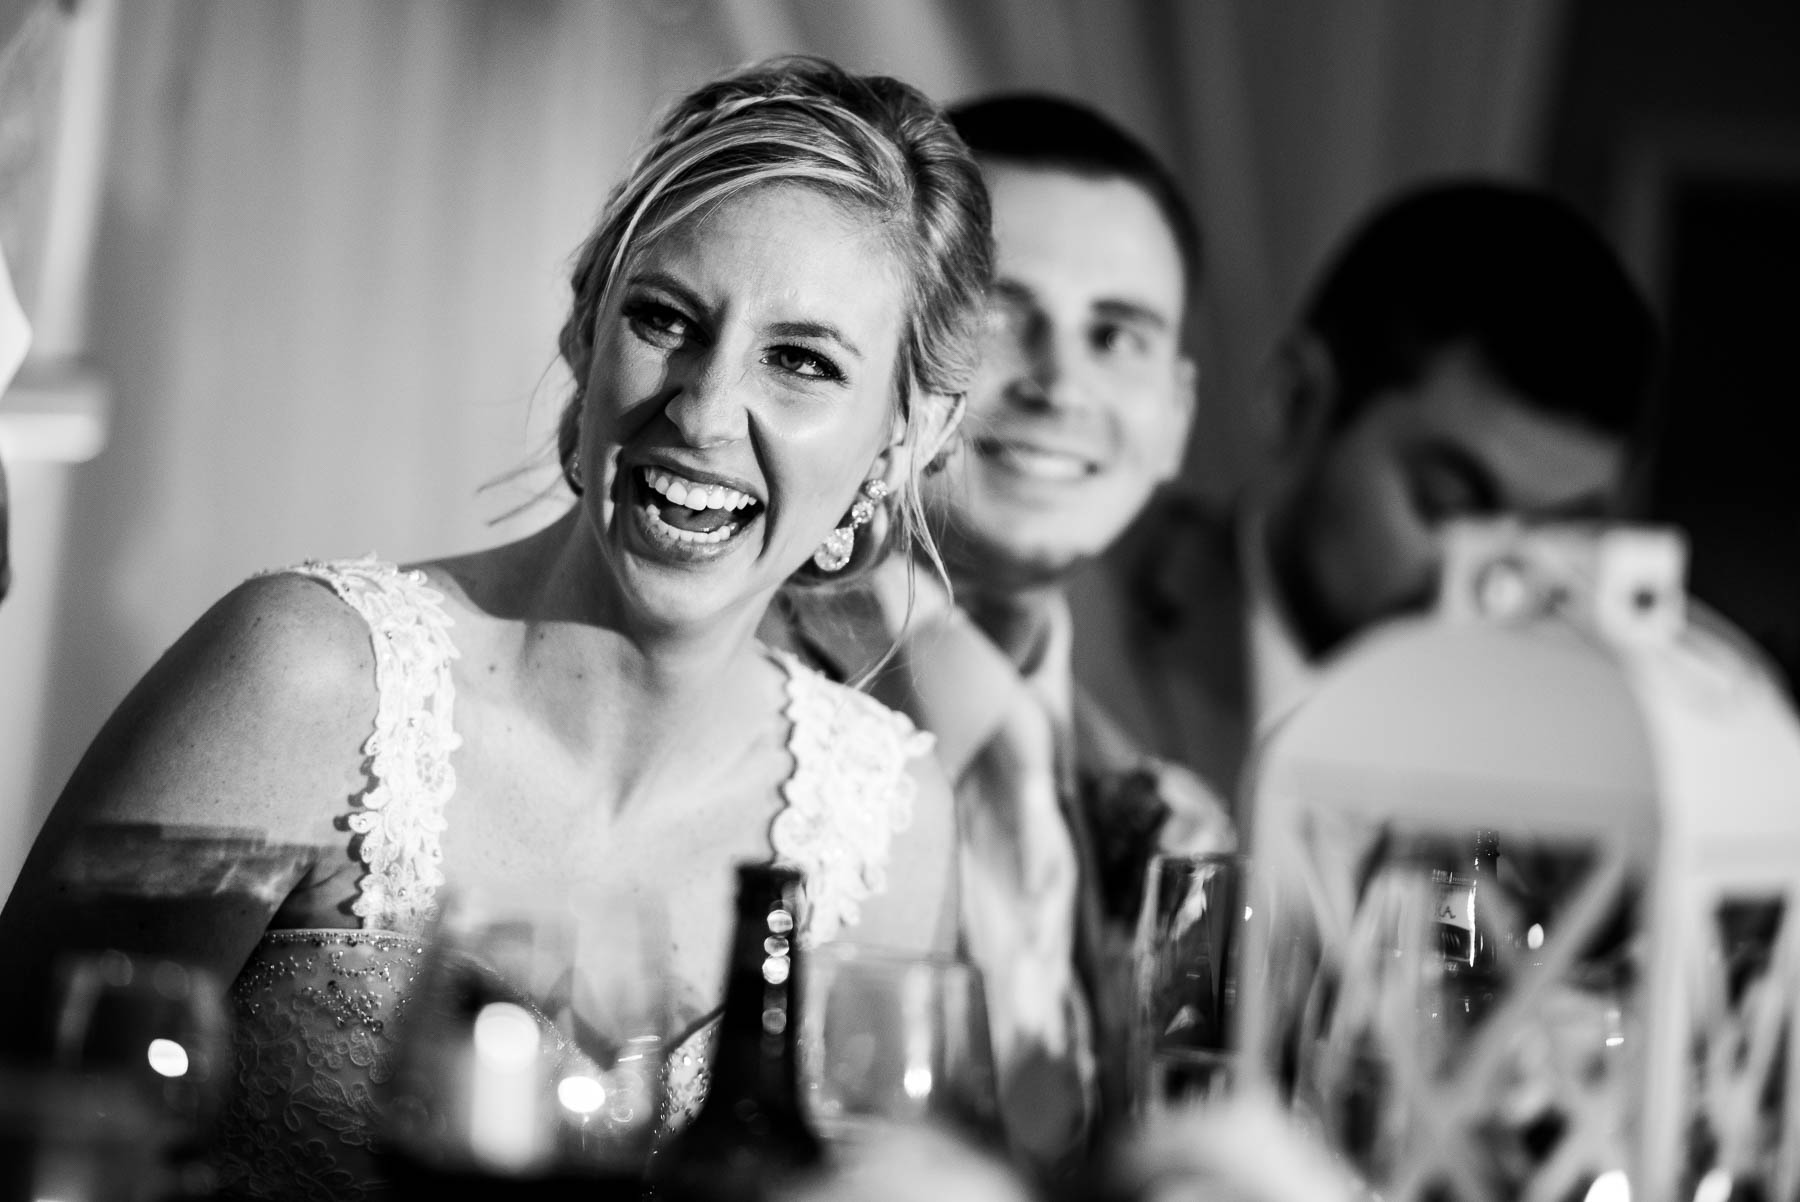 Bride and groom laugh during wedding party speeches at the St. Charles Country Club wedding.